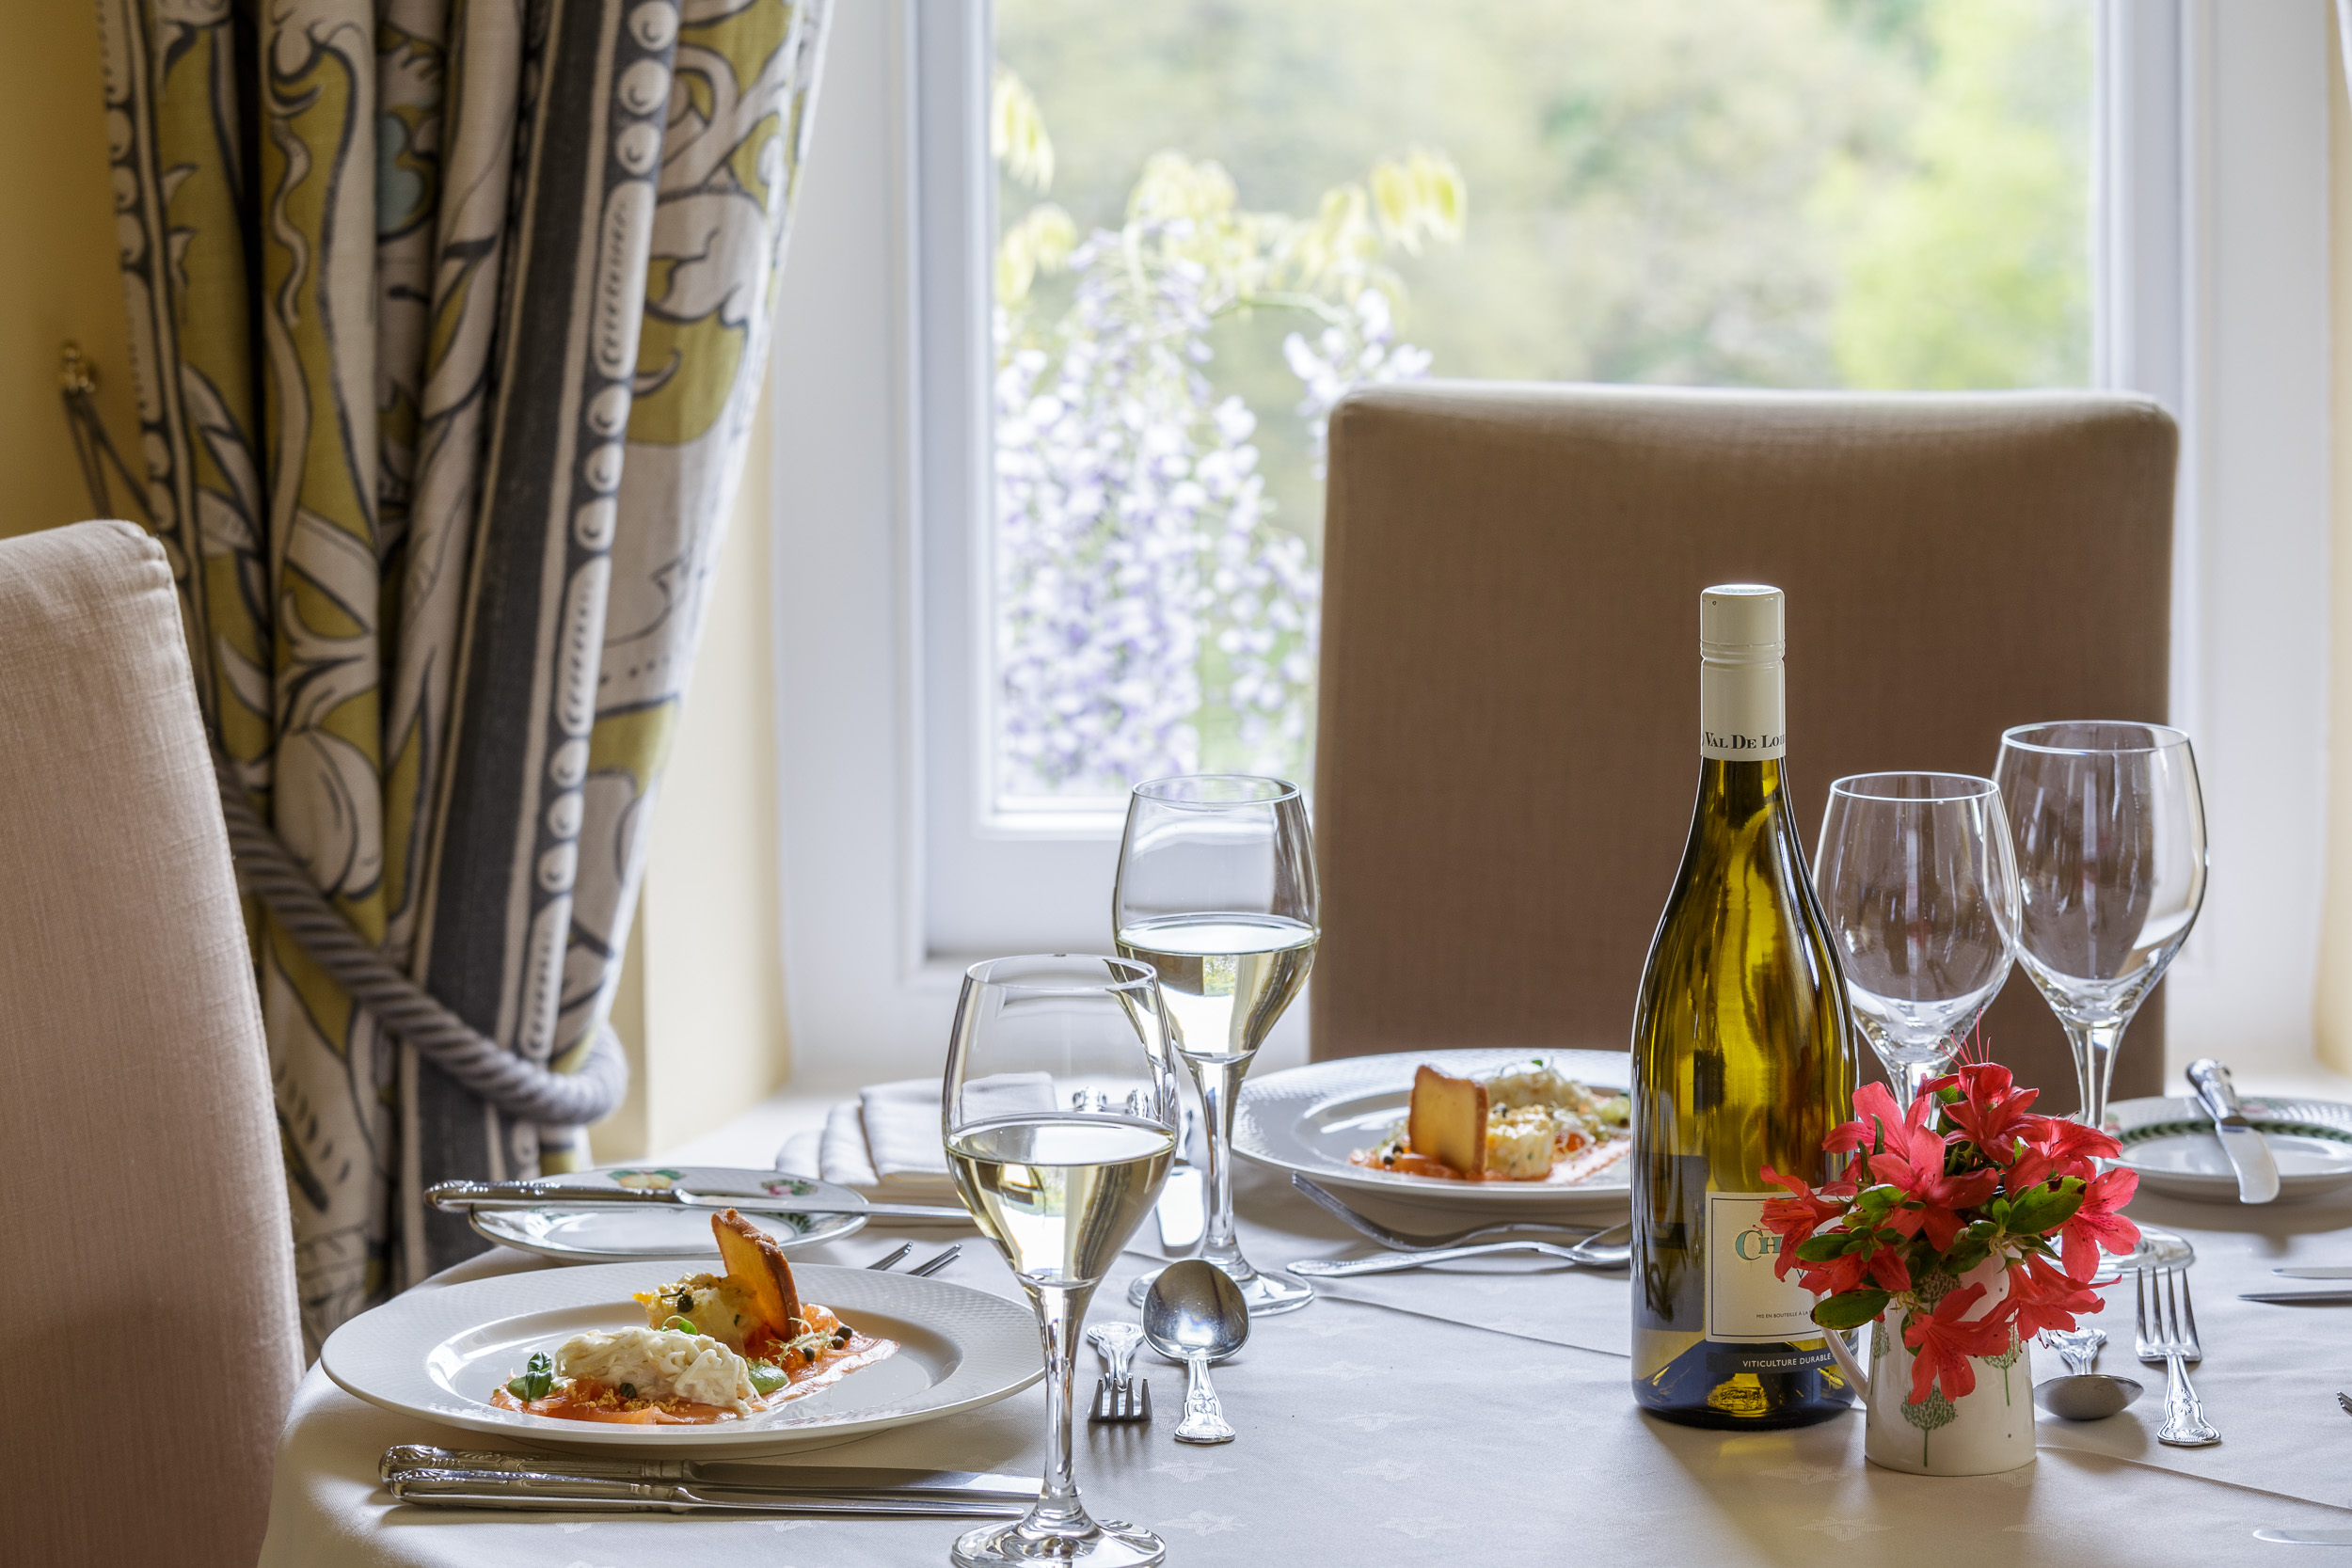 Restaurant Photography at Gliffaes Hotel, Wales